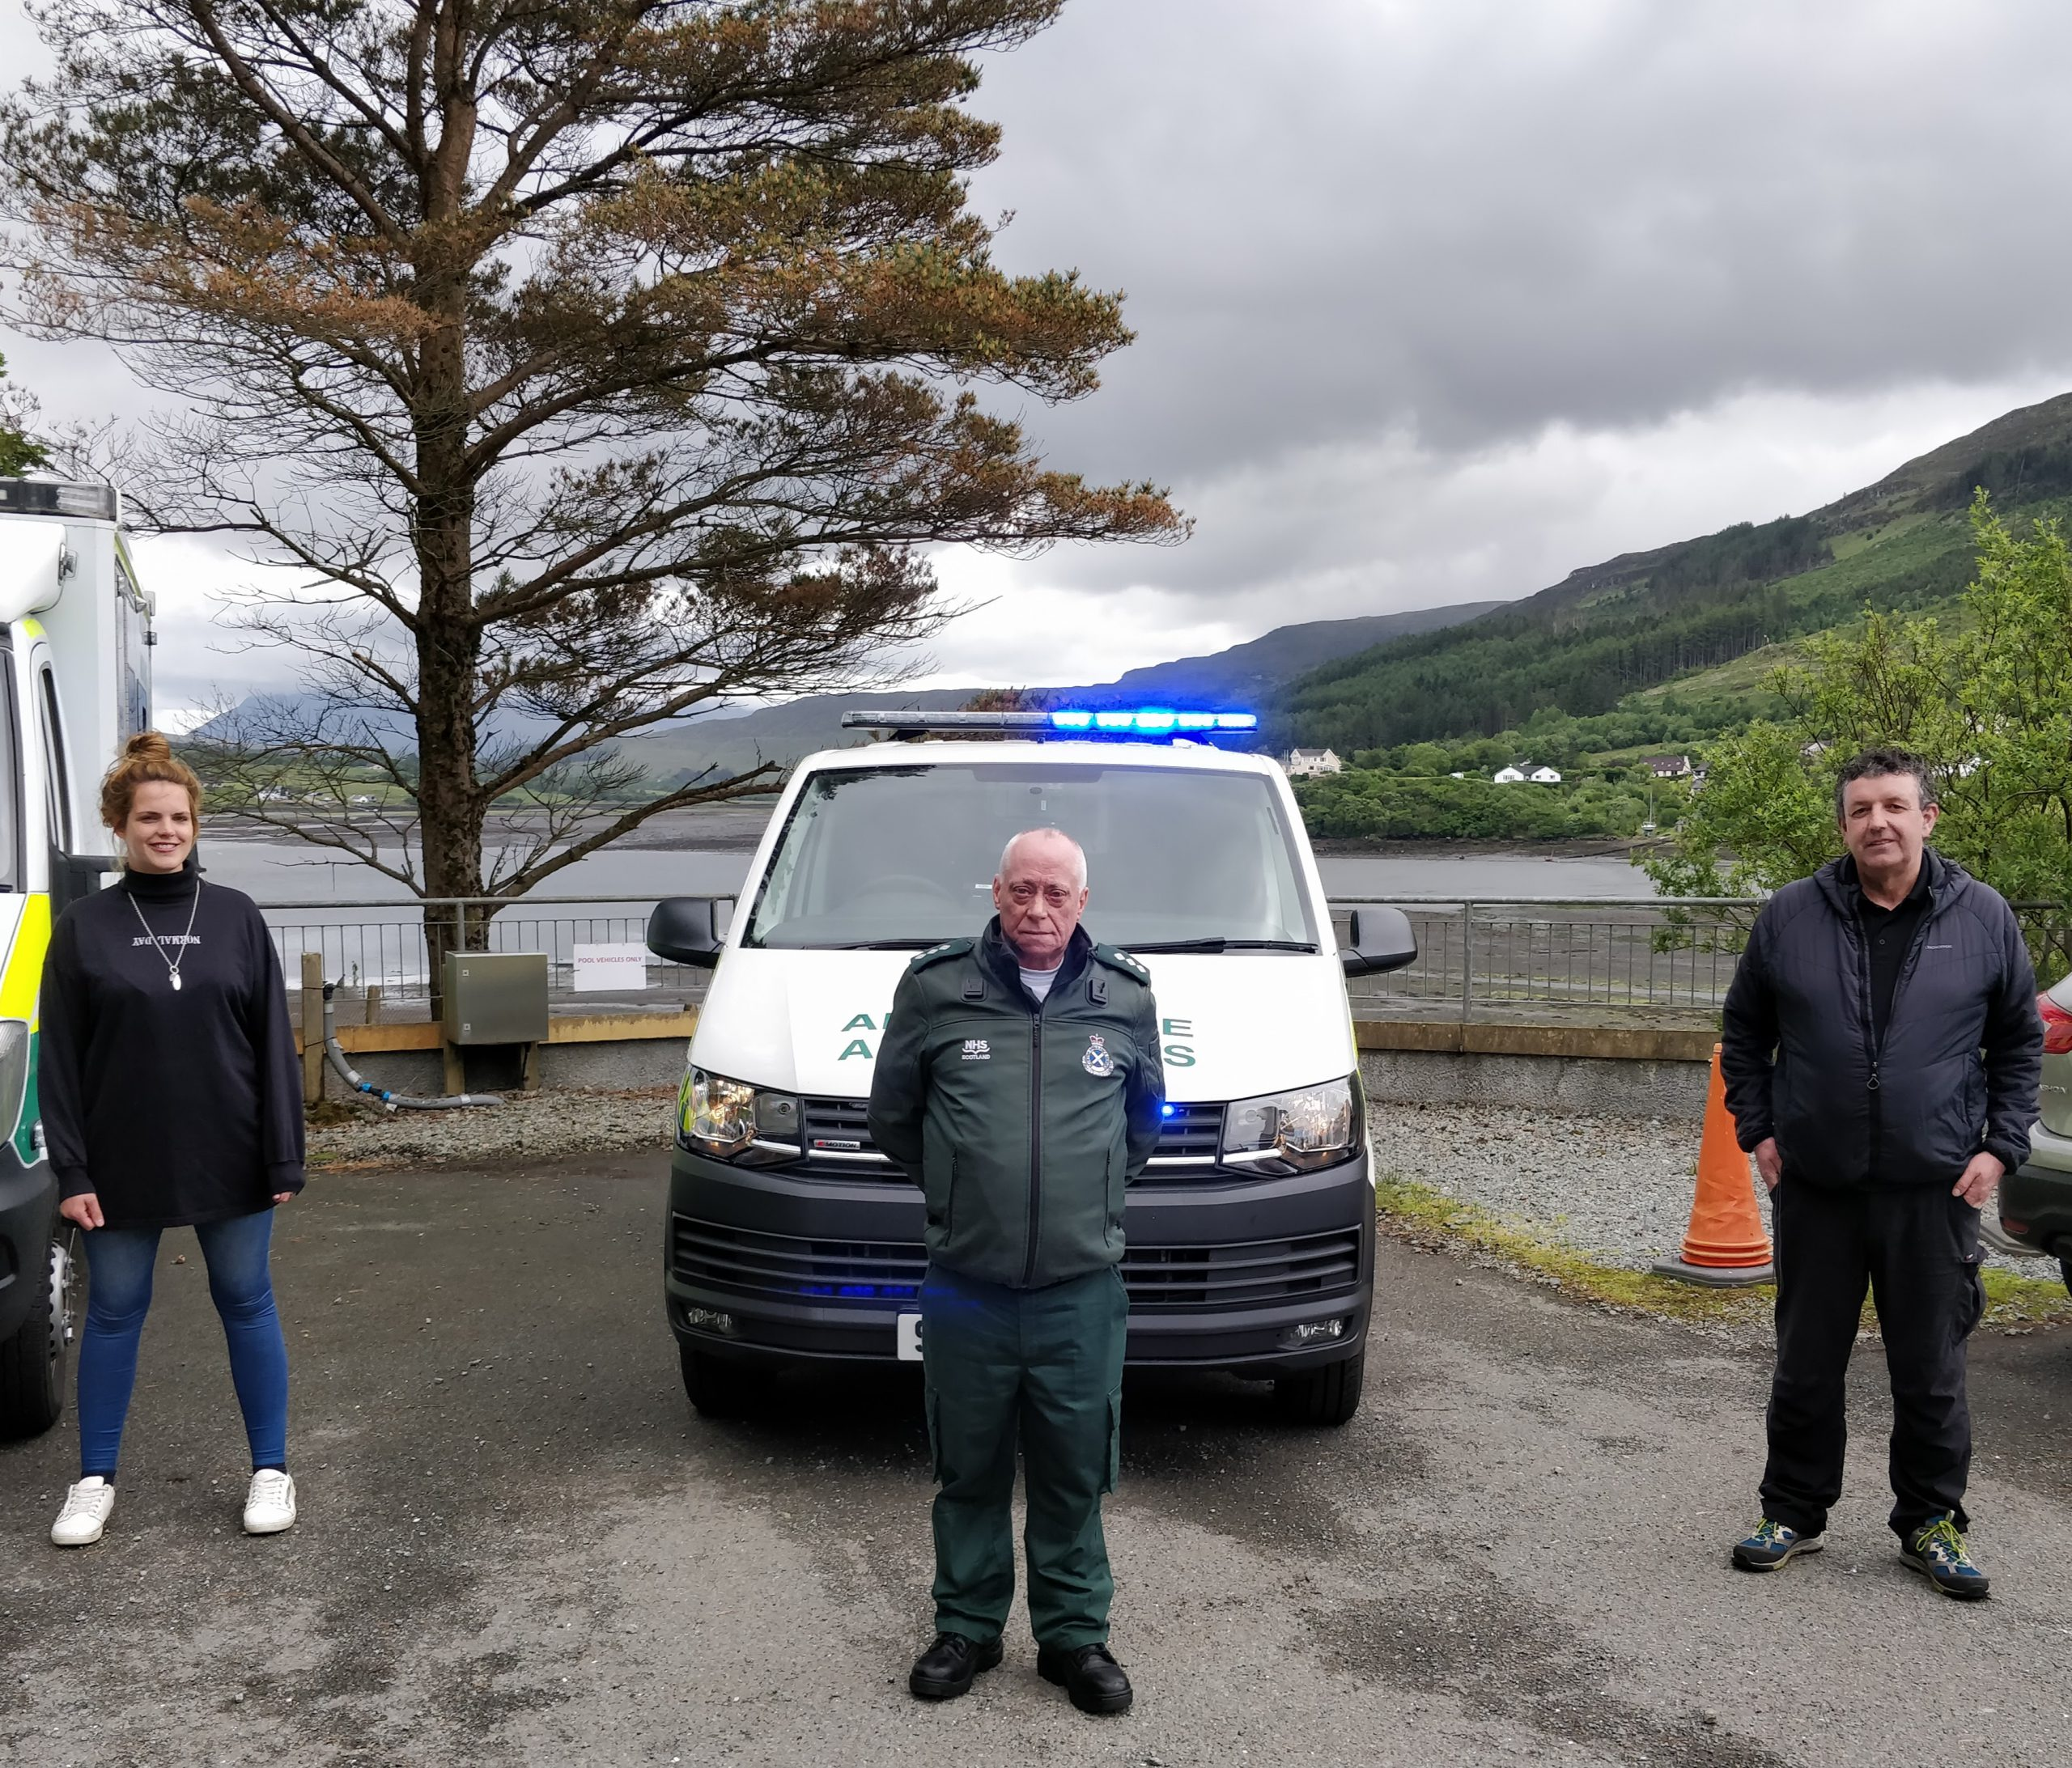 Sophie Isaacson from the Portree and Braes Community Trust, Alan Knox of the Scottish Ambulance Service, and Ross Cowie community lead for urgent care stand alongside the Rapid Response Unit at Portree Hospital, Skye.